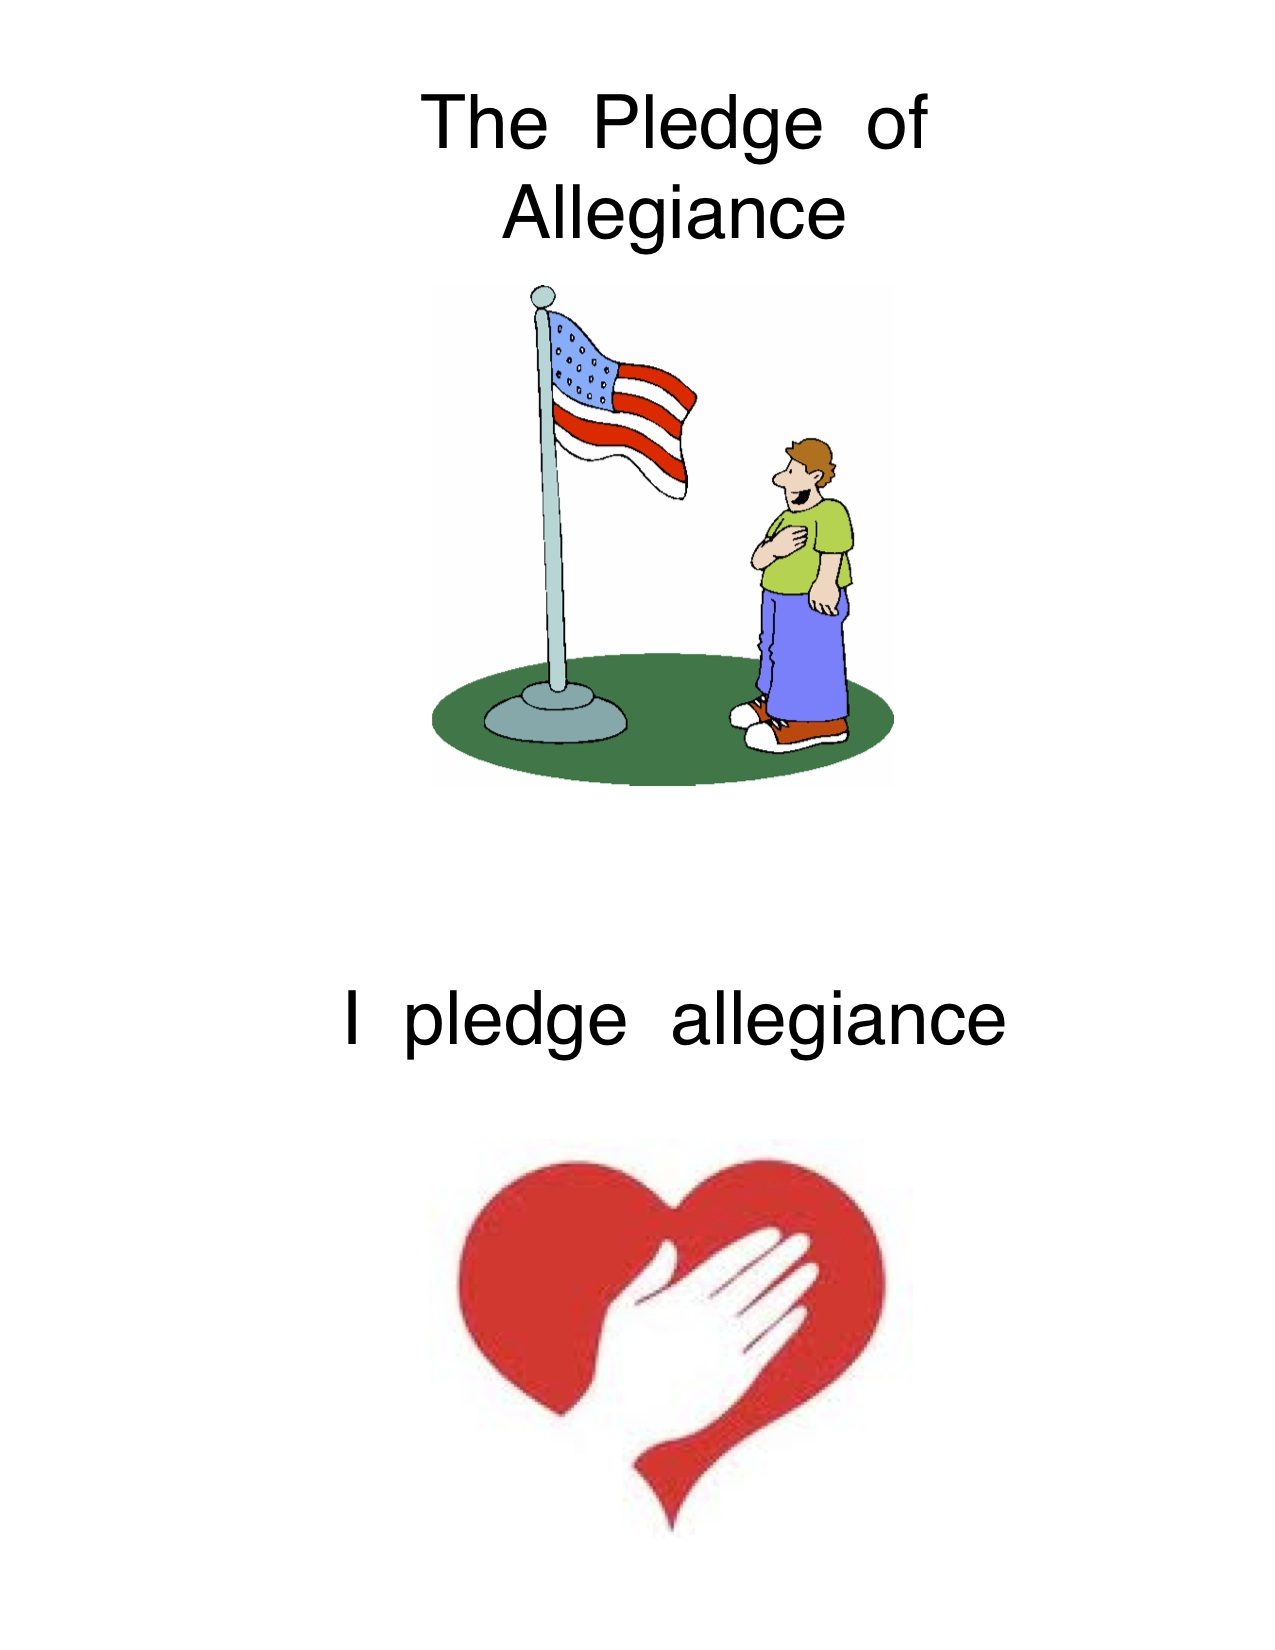 image regarding Pledge of Allegiance Words Printable referred to as The Pledge of Allegiance Kindergarten Nana